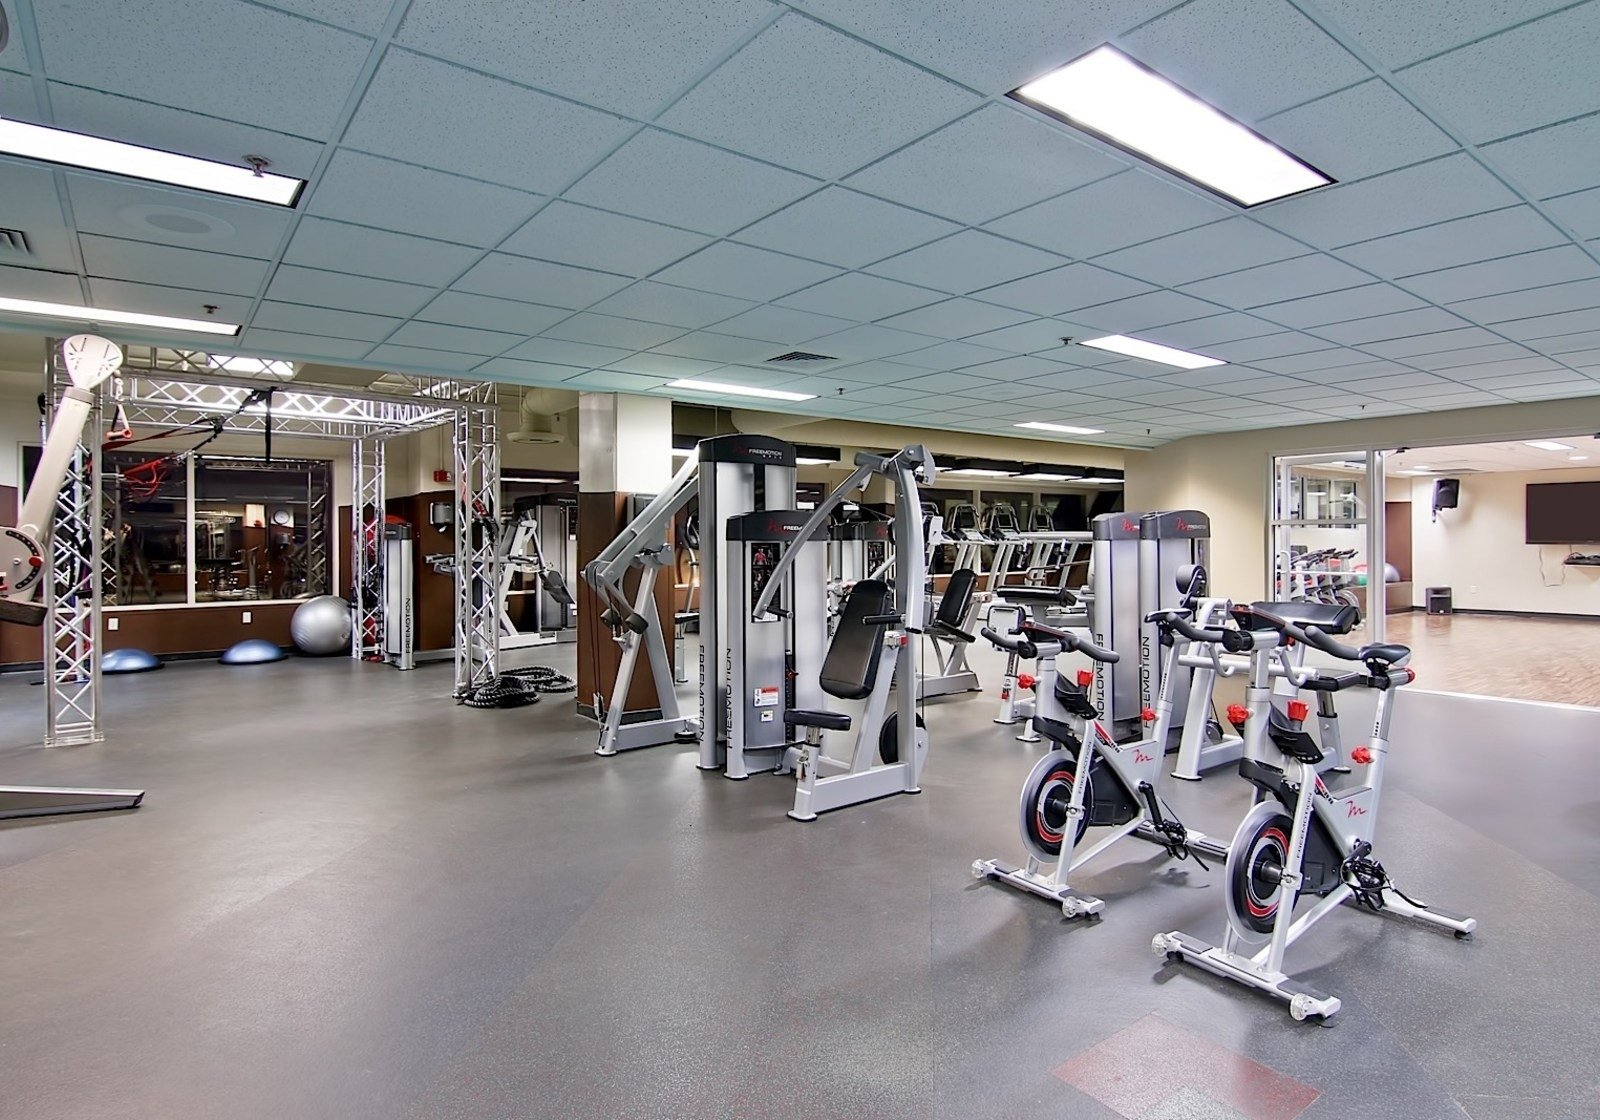 exercise equipment in a gym